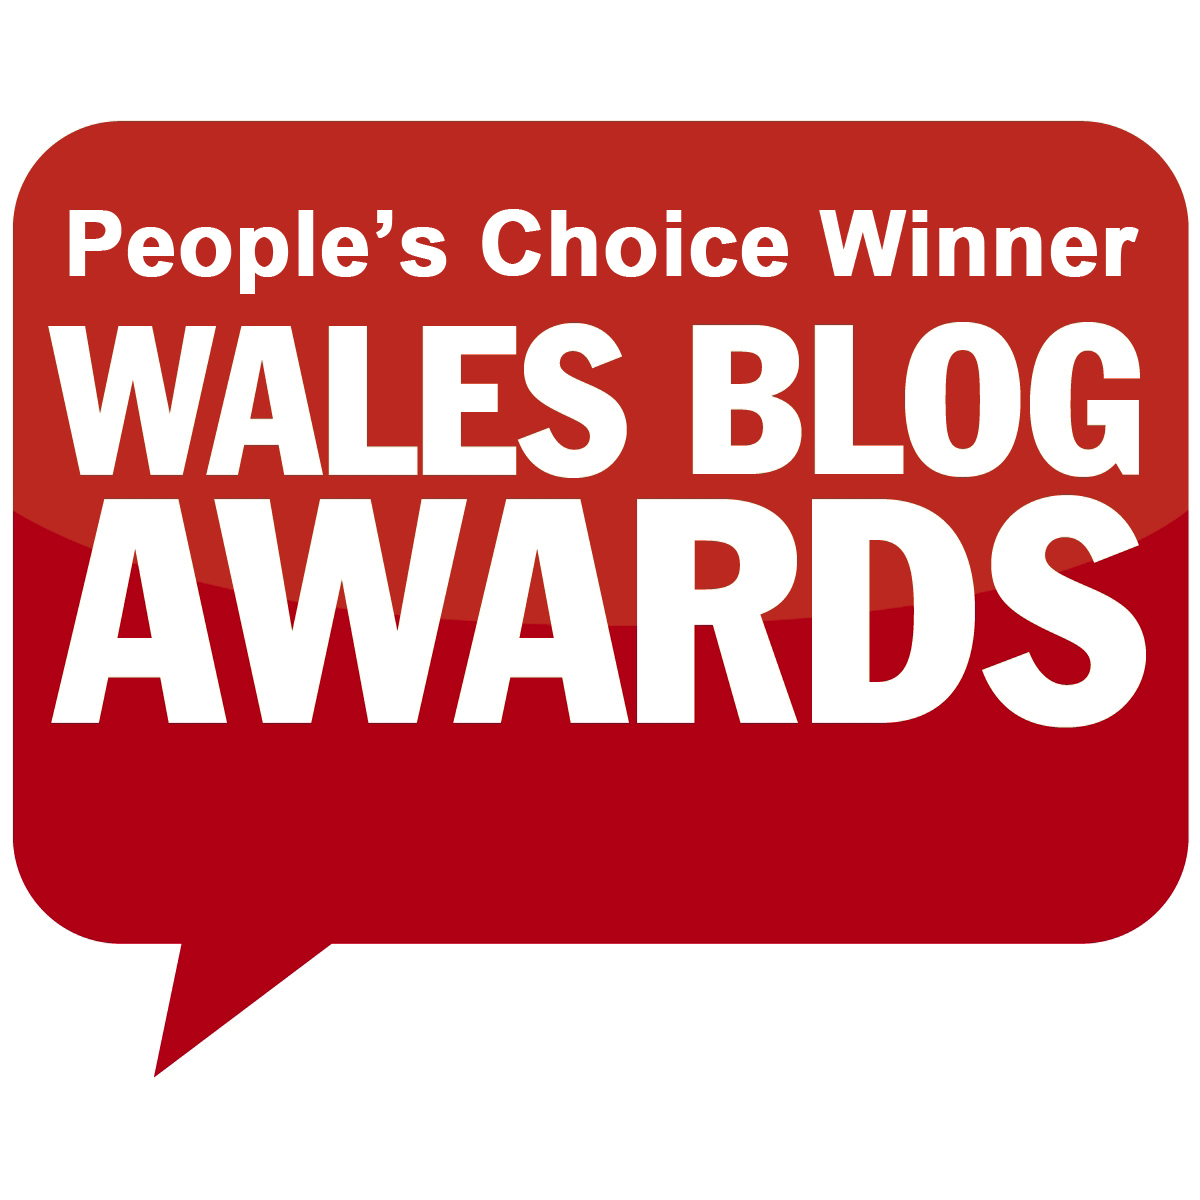 Wales Blog Awards new